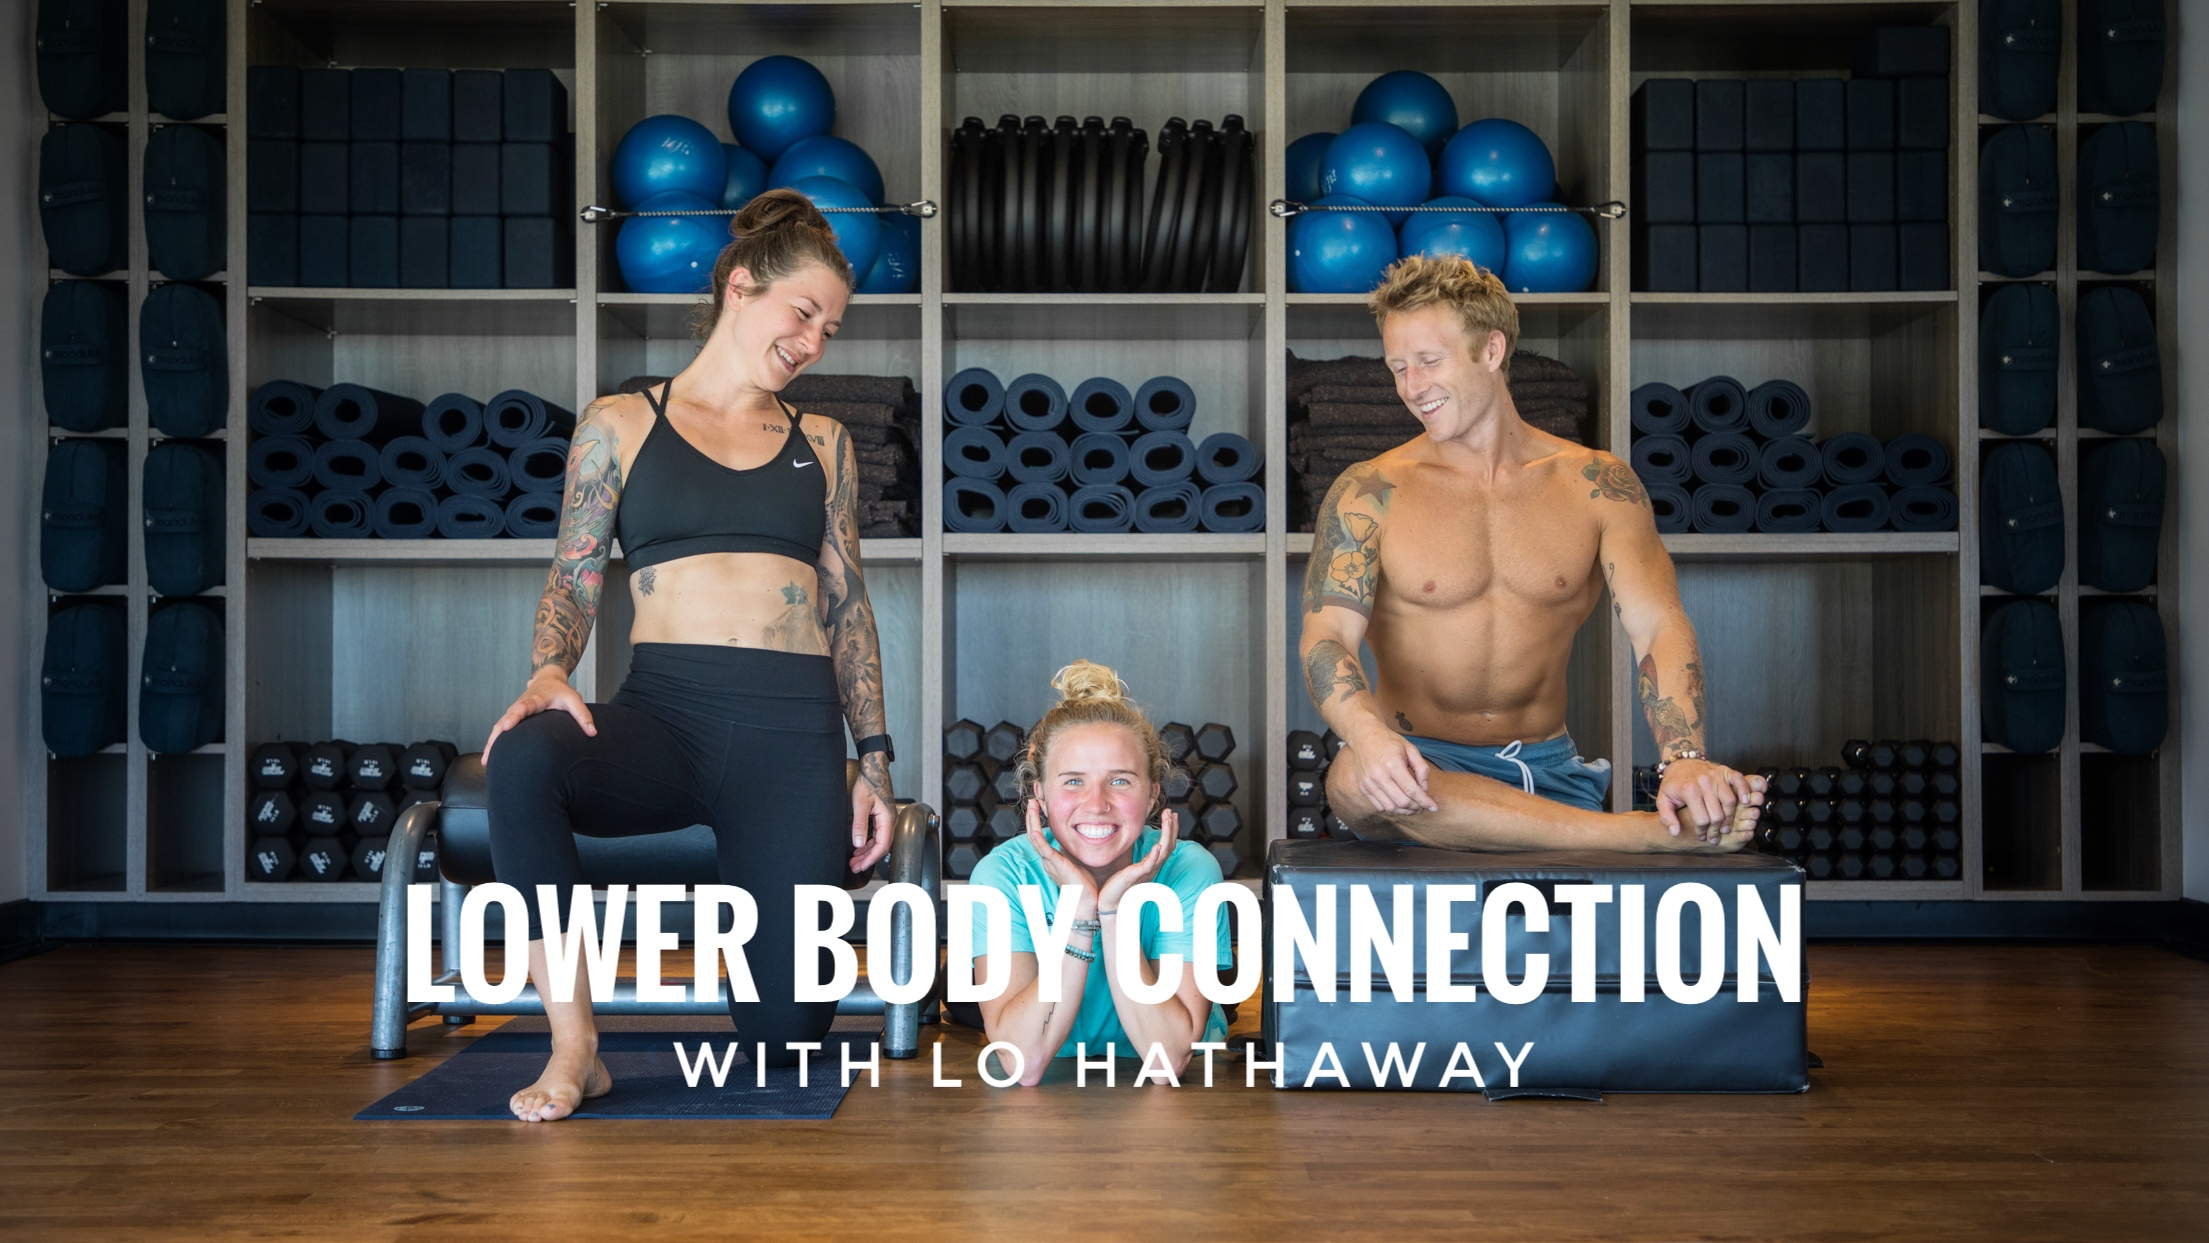 Lower Body Connection with Lo Hathaway